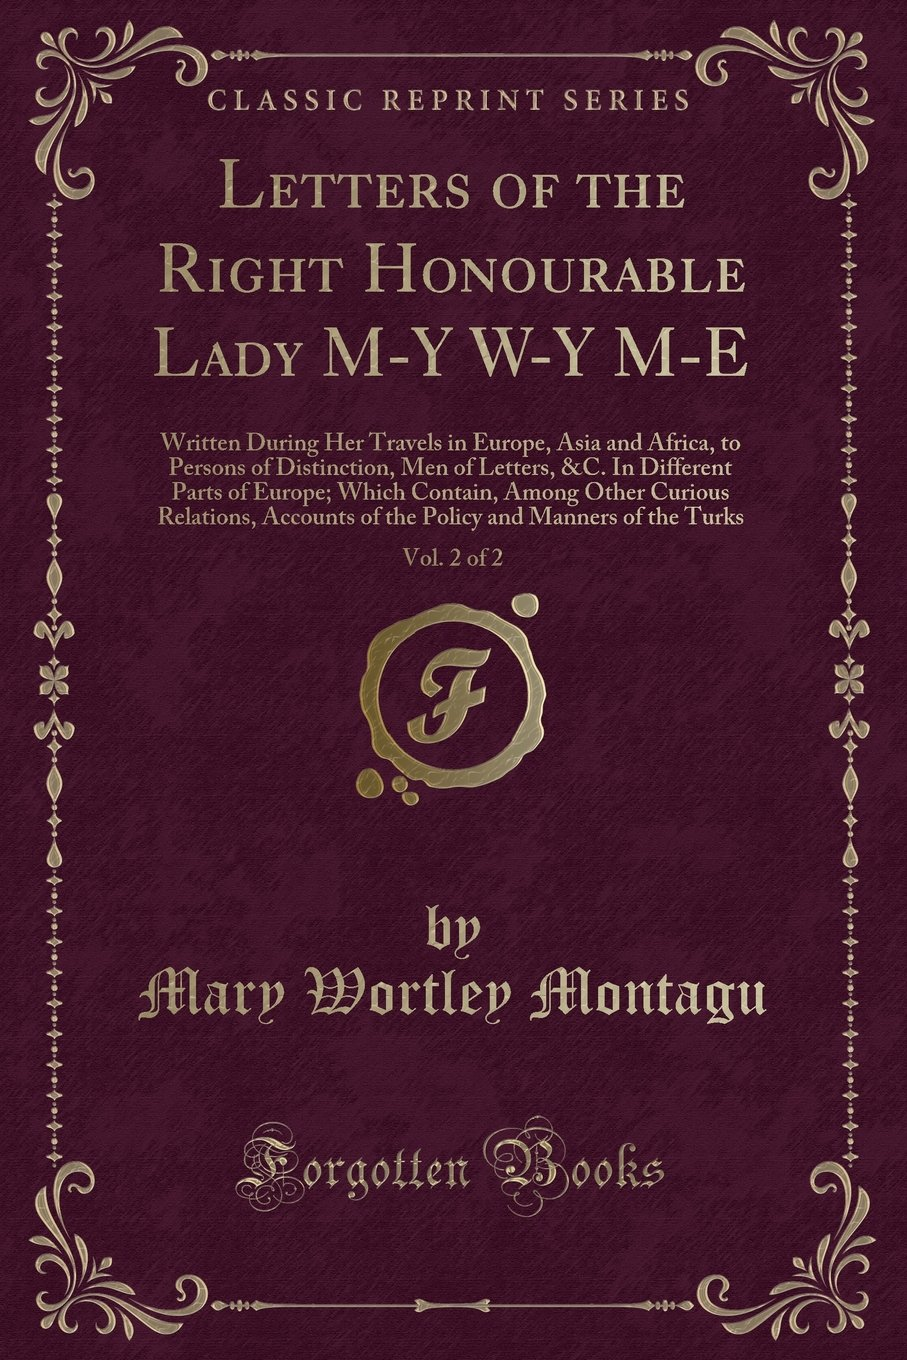 Read Online Letters of the Right Honourable Lady M-Y W-Y M-E, Vol. 2 of 2: Written During Her Travels in Europe, Asia and Africa, to Persons of Distinction, Men ... Among Other Curious Relations, Accounts of th ebook